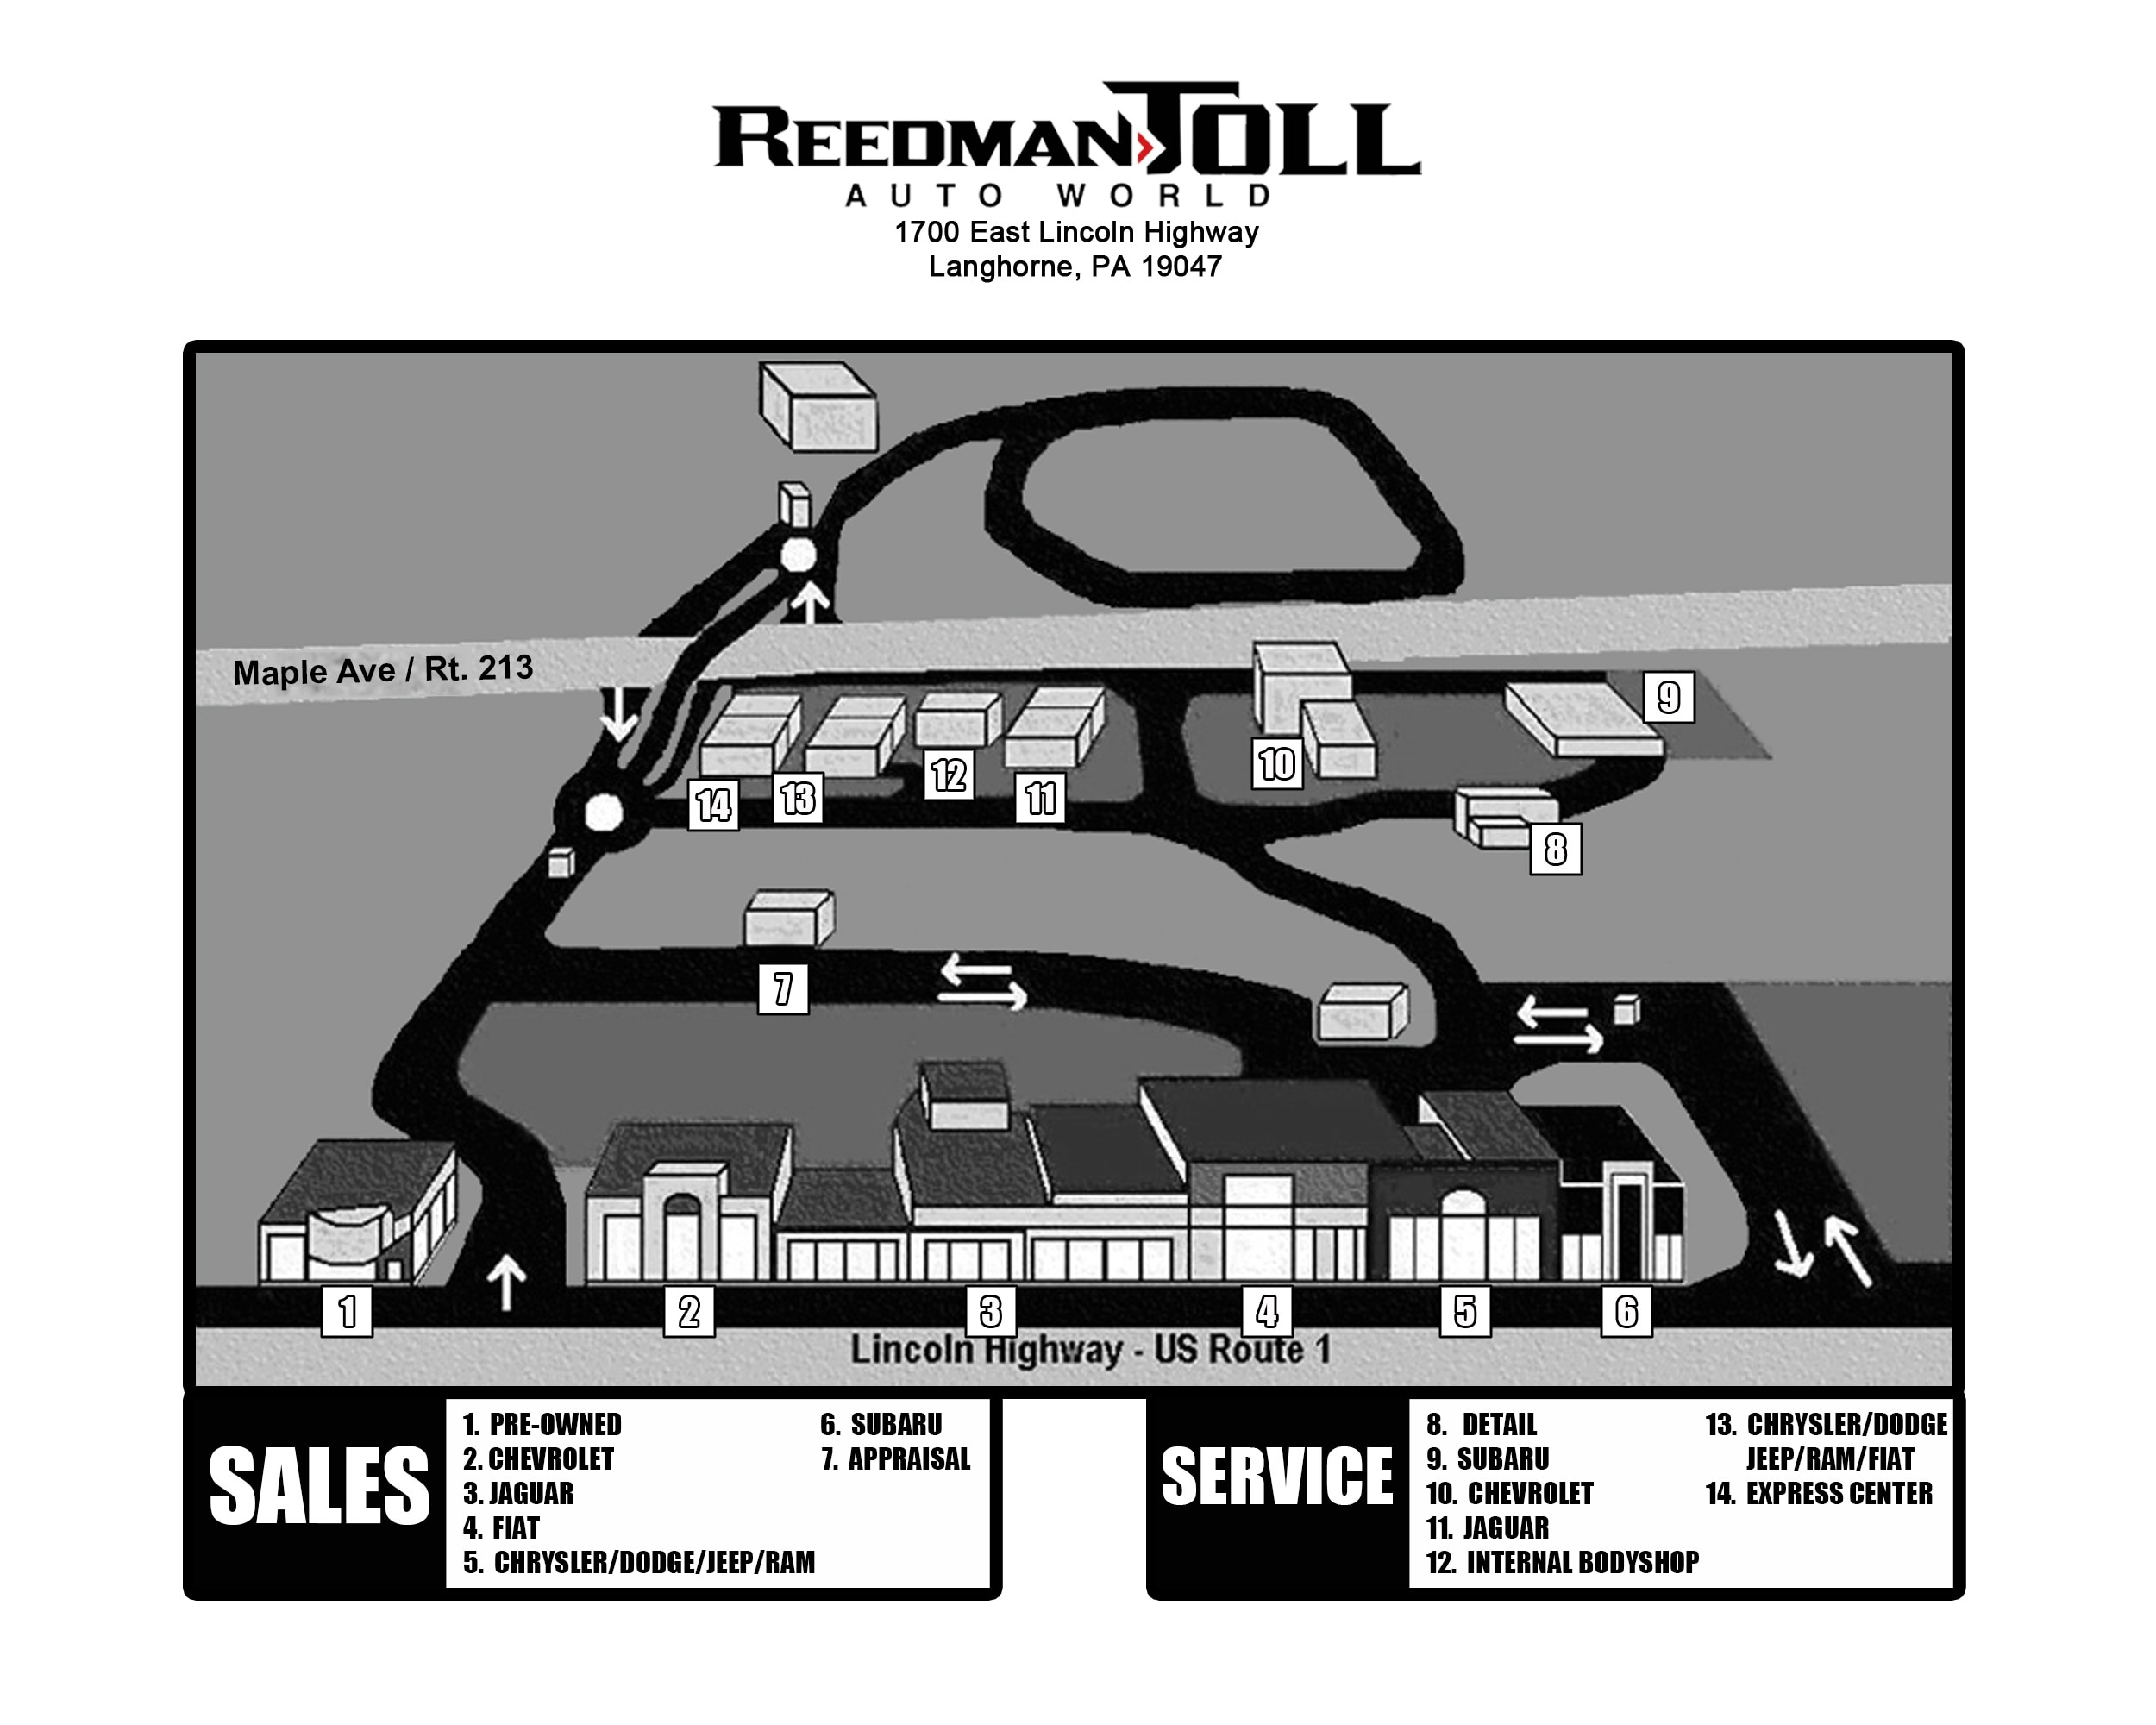 Reedman Toll Chevy >> Reedman Toll Auto World | New Dodge, Jeep, FIAT, Chevrolet